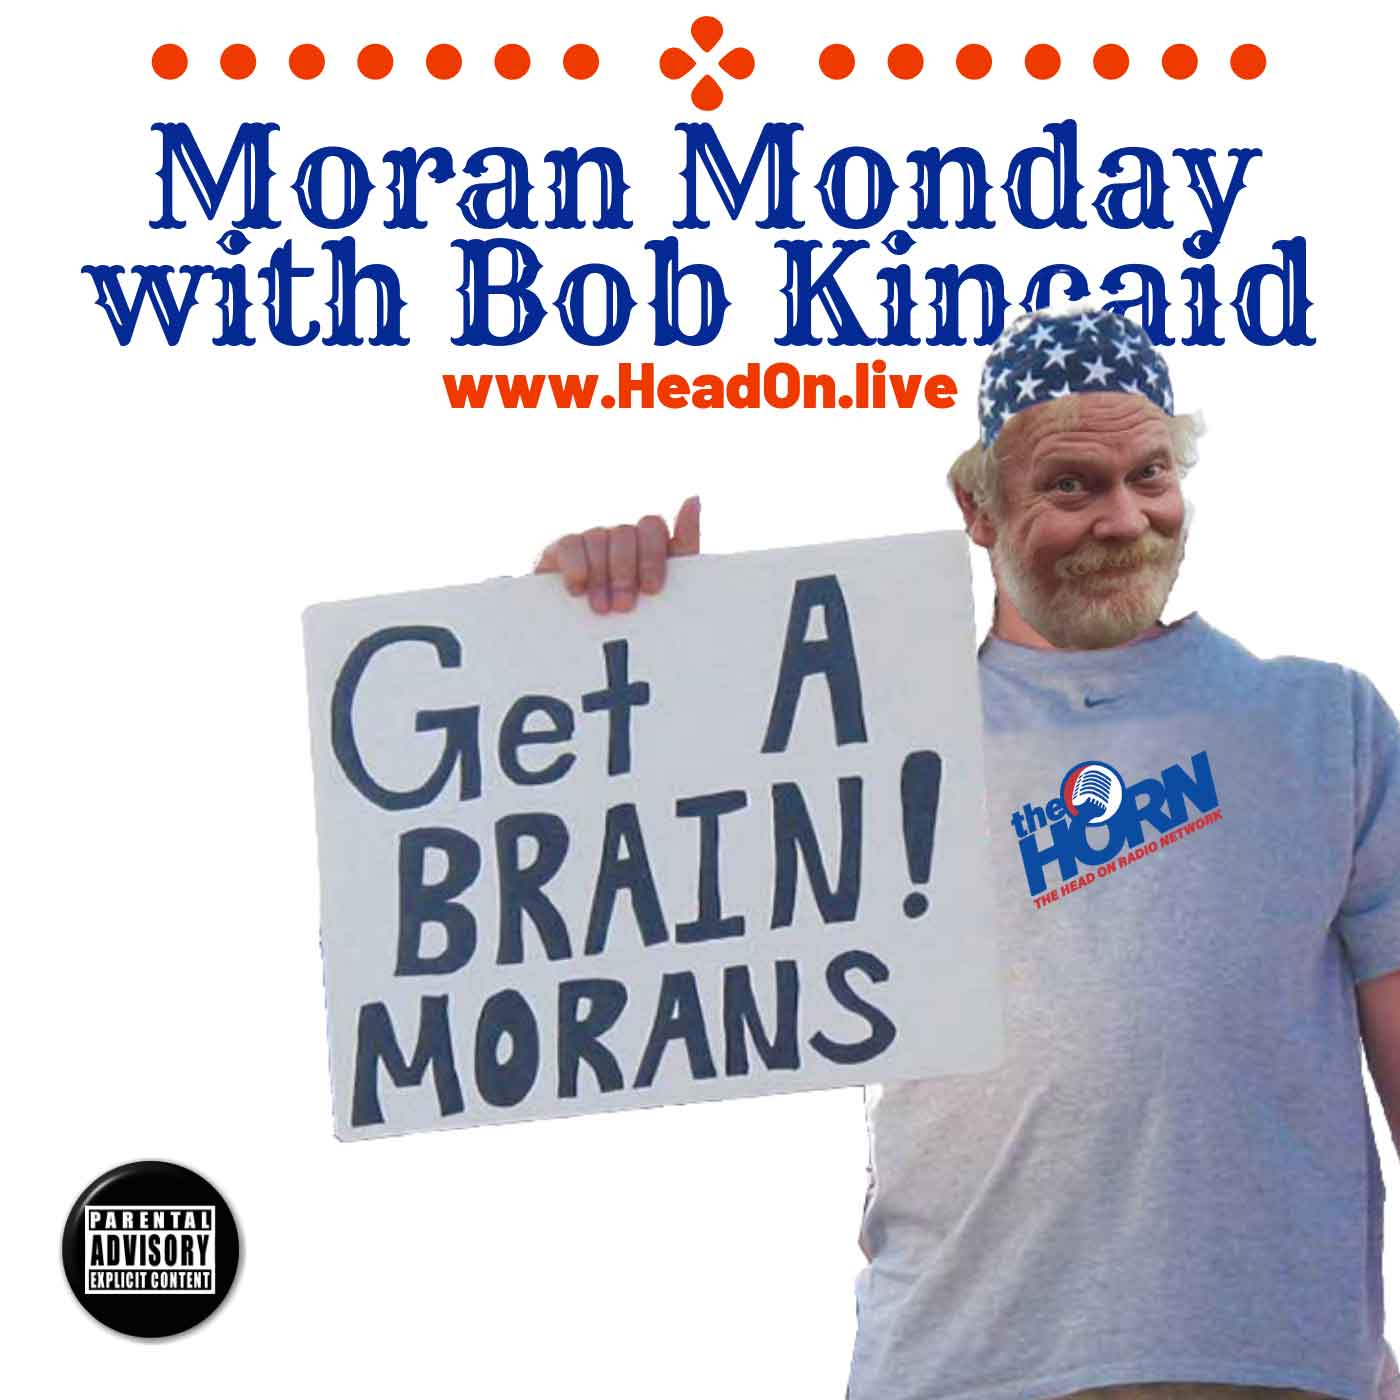 Moran Monday, Head-ON With Bob Kincaid, 6 January 2020